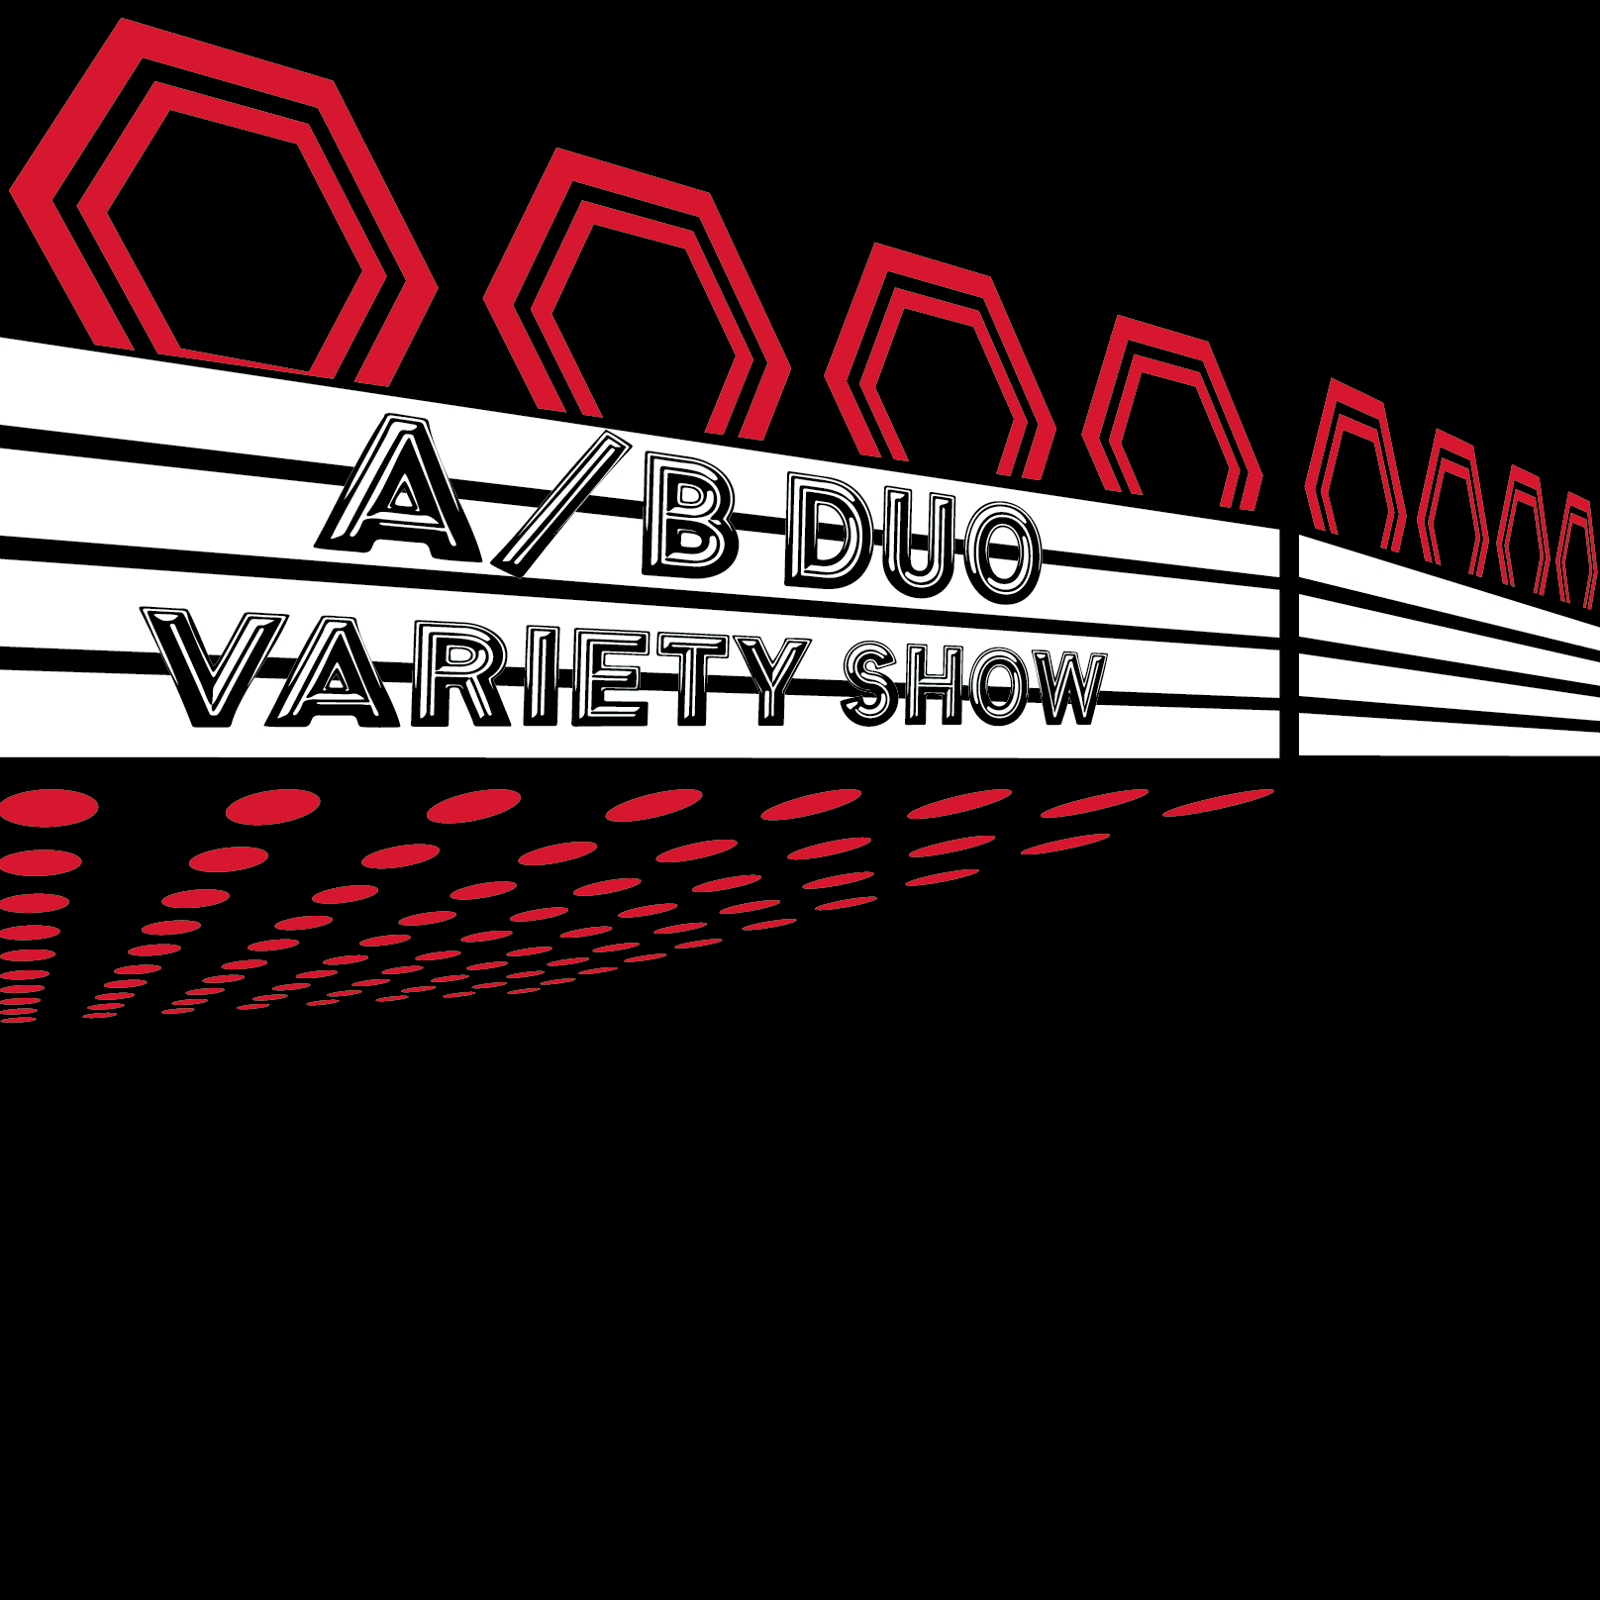 Variety Show by A/B Duo